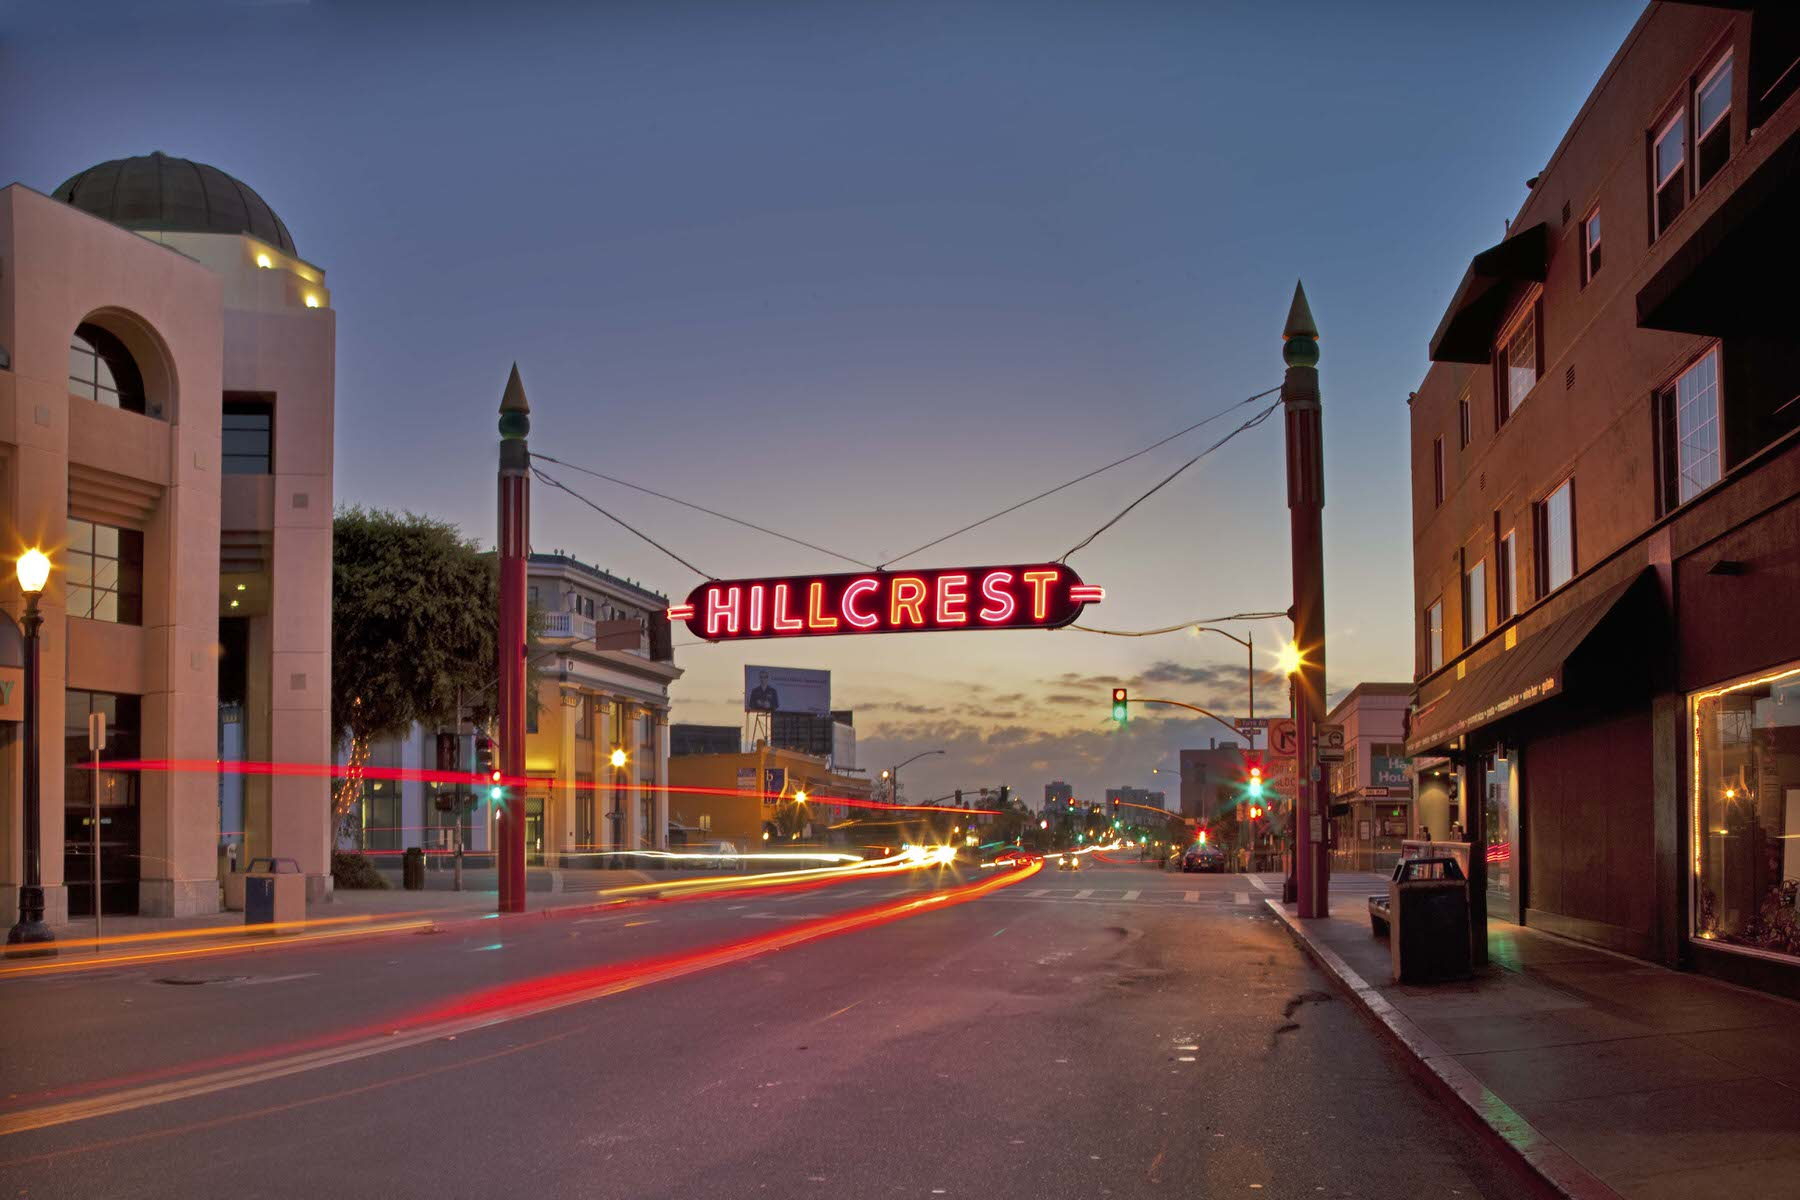 hillcrest_sign-1775-76-79_crop.jpg